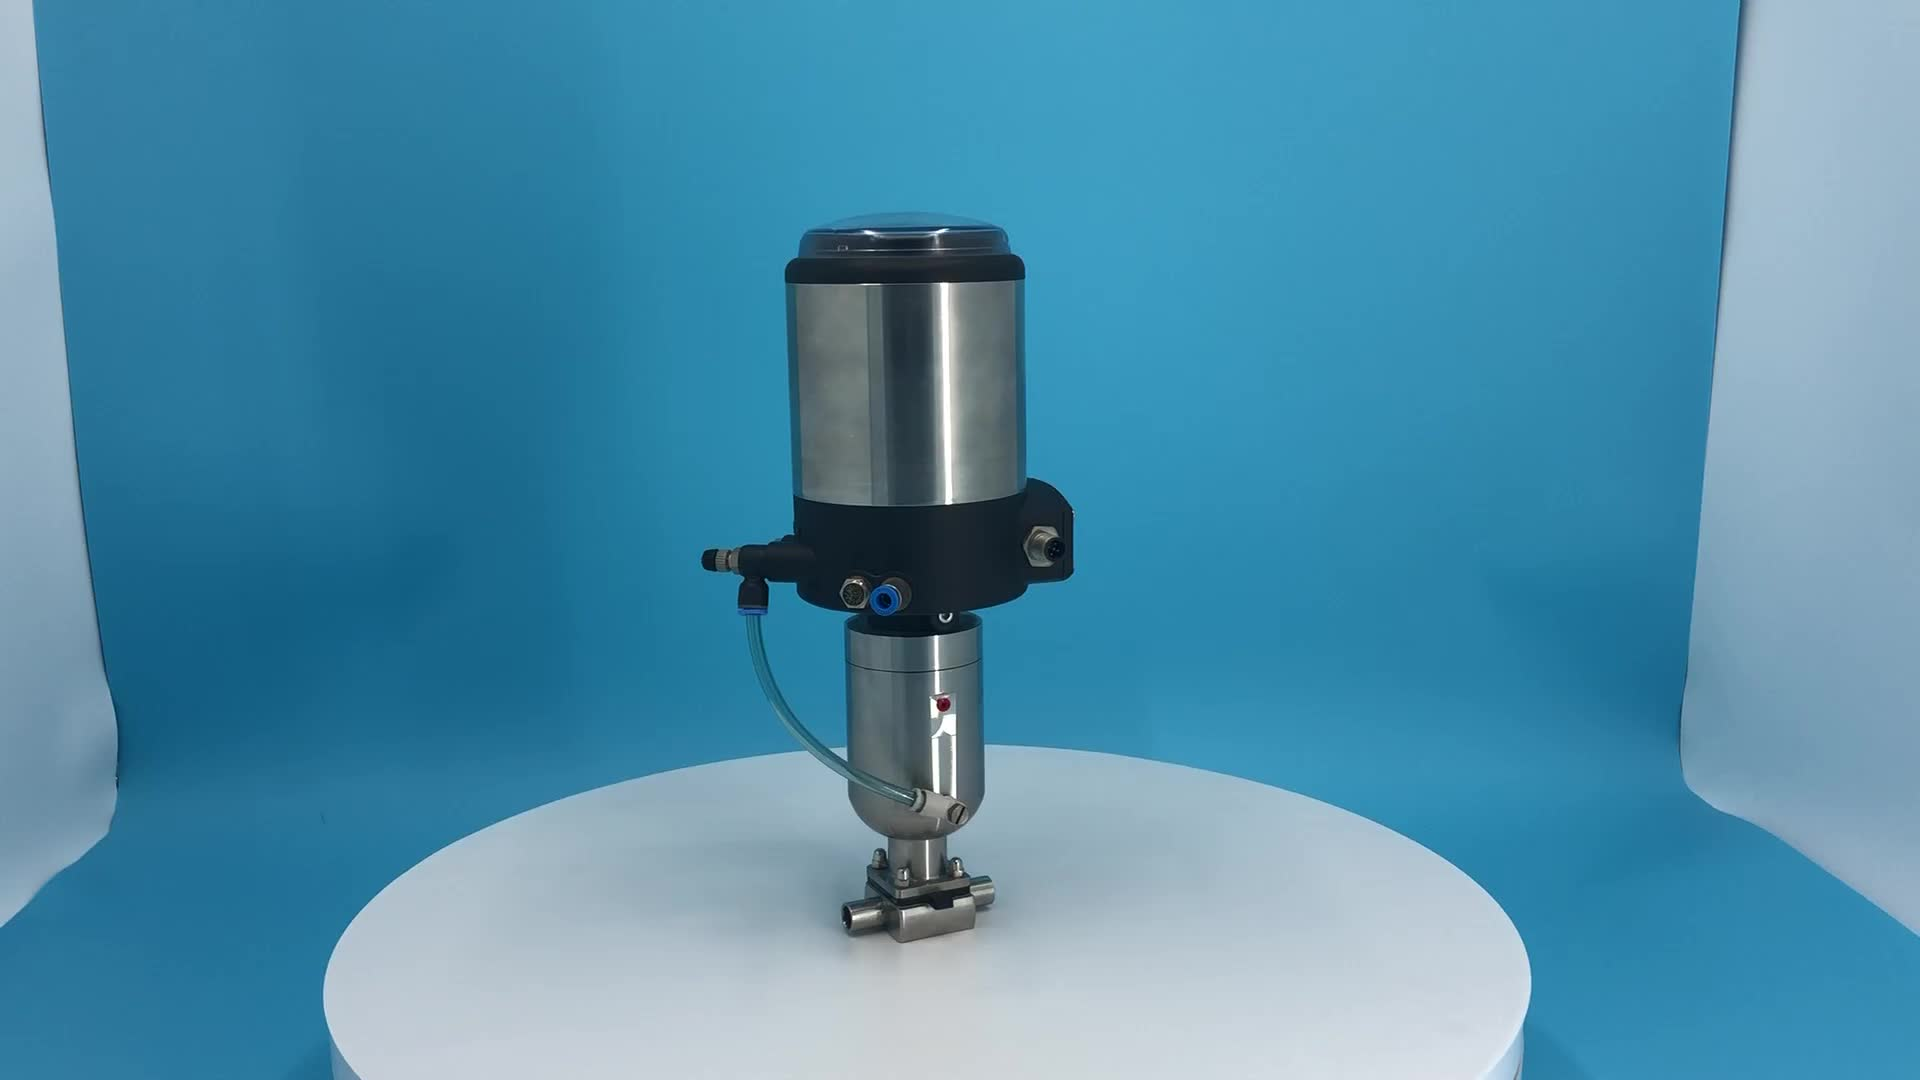 SS316L stainless steel pneumatic diaphragm valve with positioner for biological systems